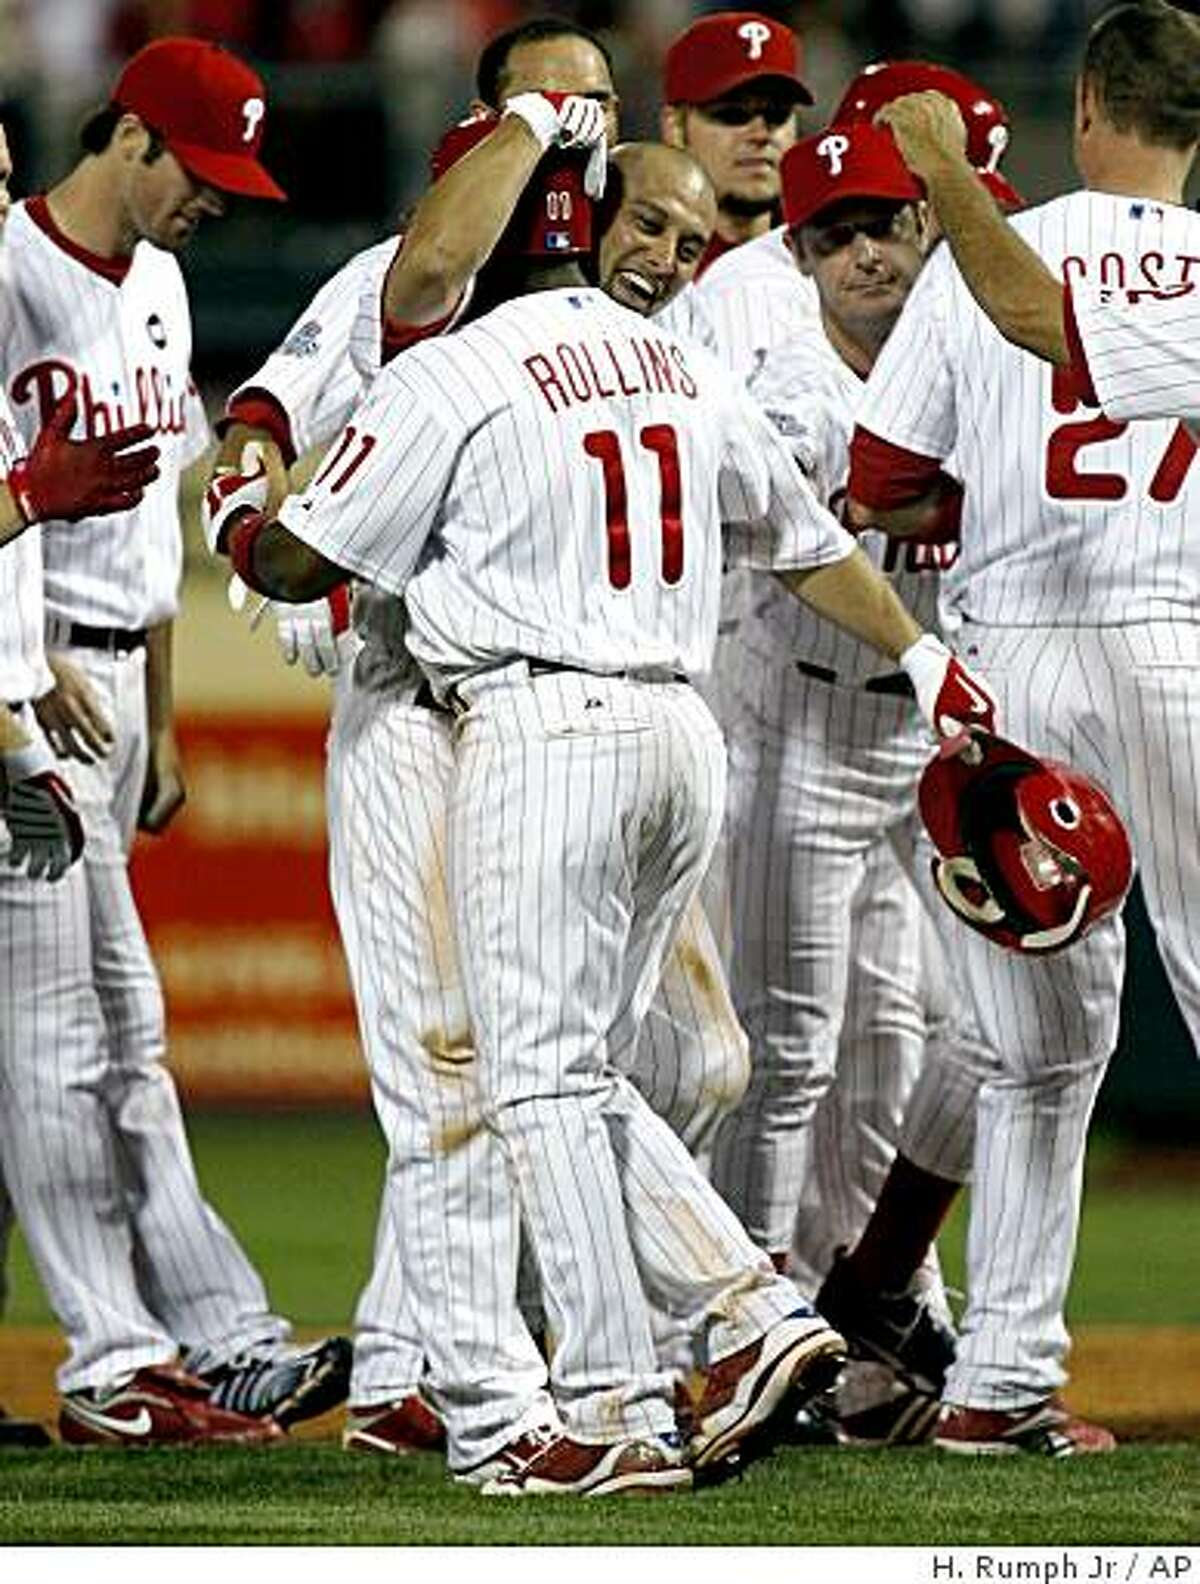 Philadelphia Phillies' Shane Victorino, center, celebrates with Jimmy Rollins (11) after Victorino hit a one run single against the Cincinnati Reds' to win the game 3-2 in the ninth inning of a baseball game, Wednesday, July 8, 2009, in Philadelphia. (AP Photo/H. Rumph Jr.)